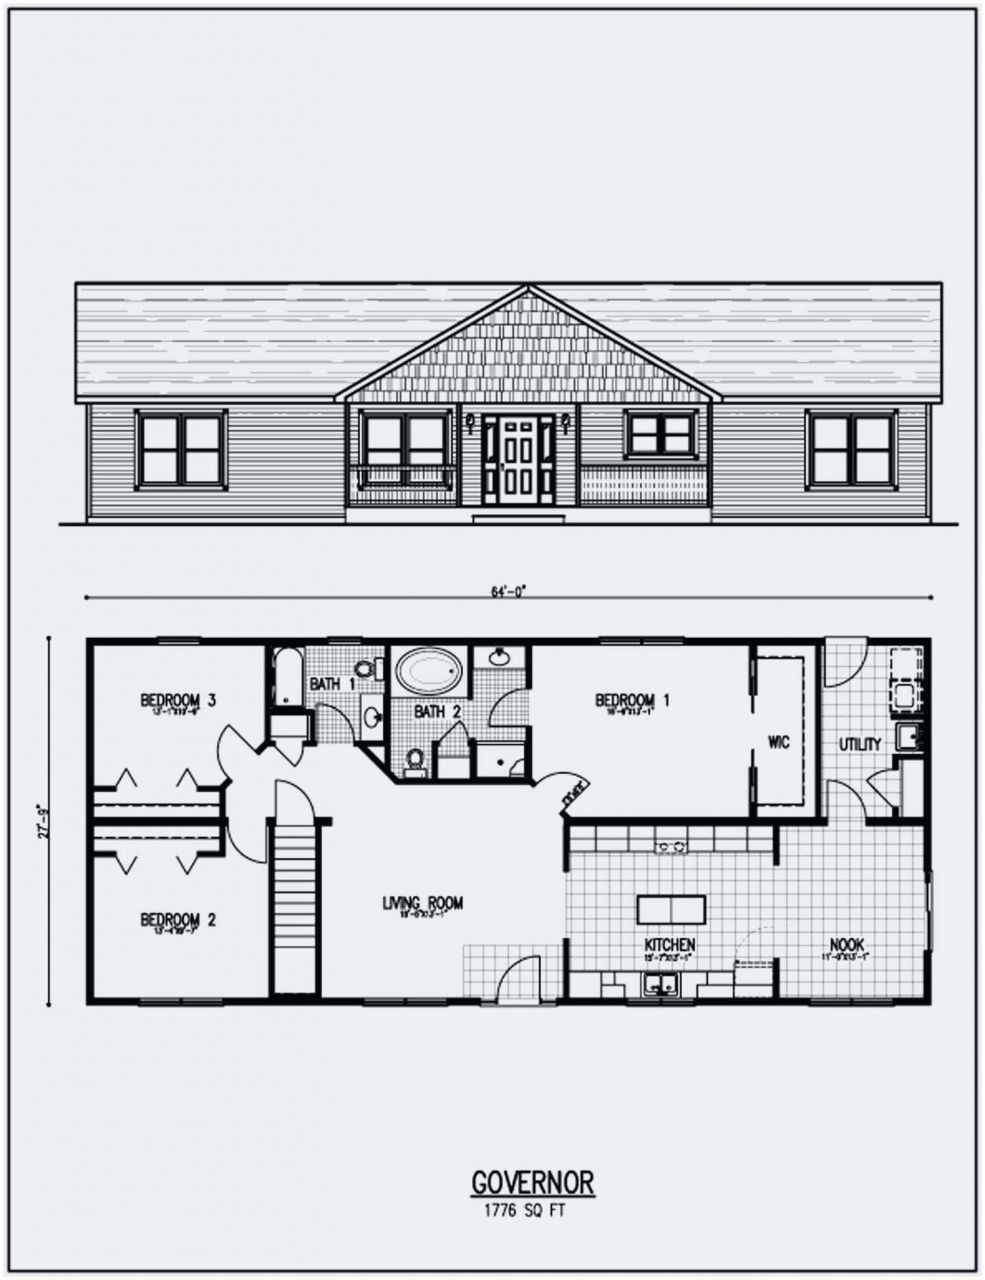 Lovely Ranch House Plans With Basement 3 Bedroom 55 Small Ranch House Plans With Basement 201 Floor Plans Ranch Ranch House Floor Plans Basement House Plans